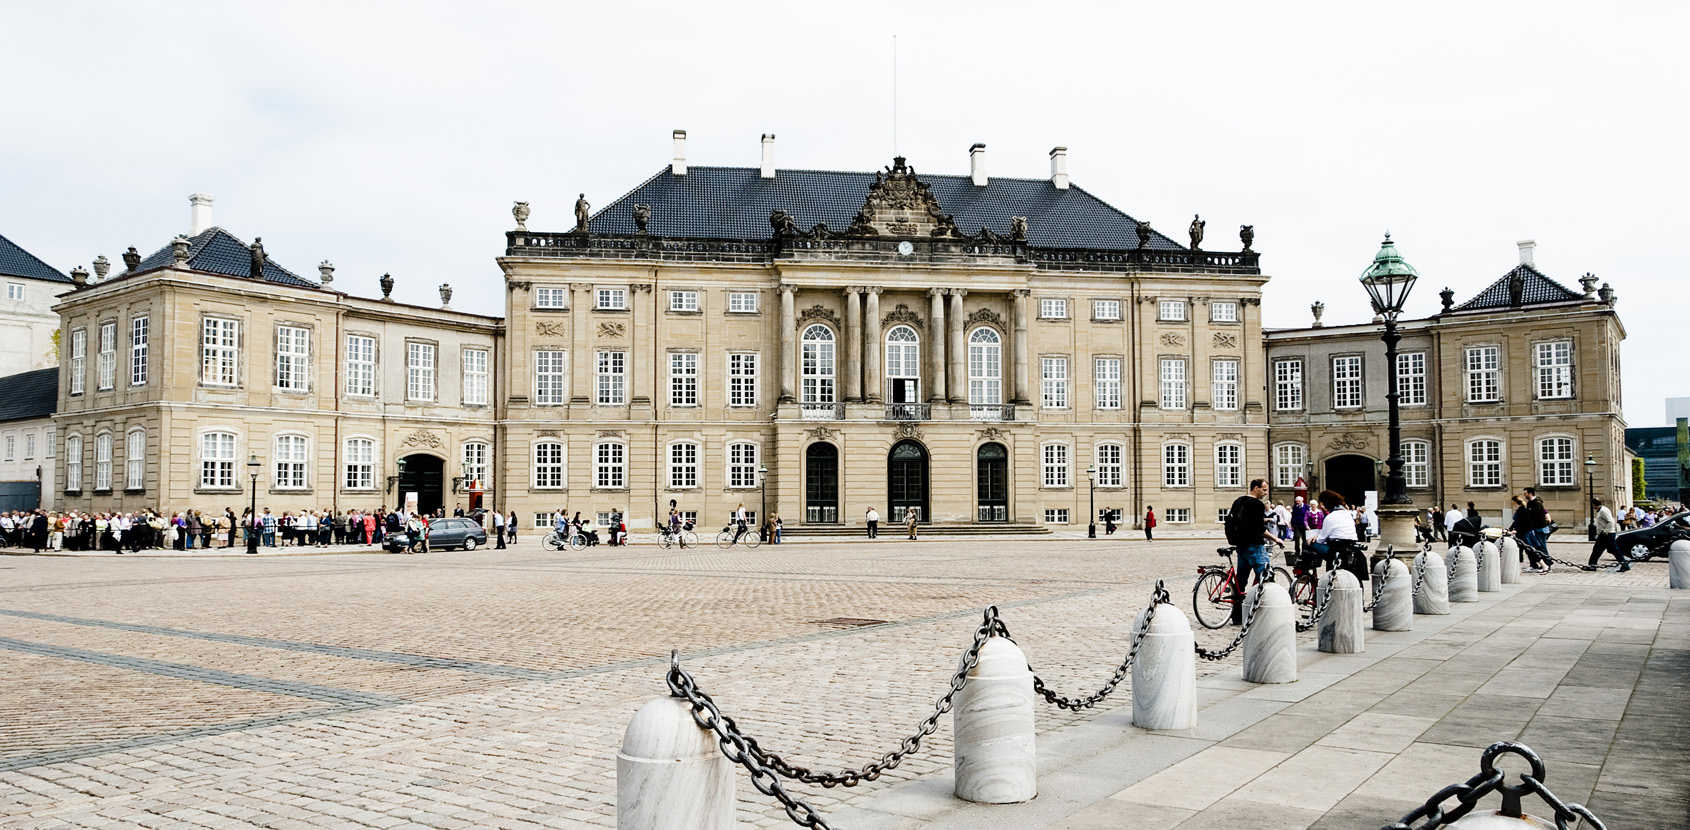 The palace houses the museum, The Royal Danish Collection - Amalienborg, which is the museum of the Danish Royal Family